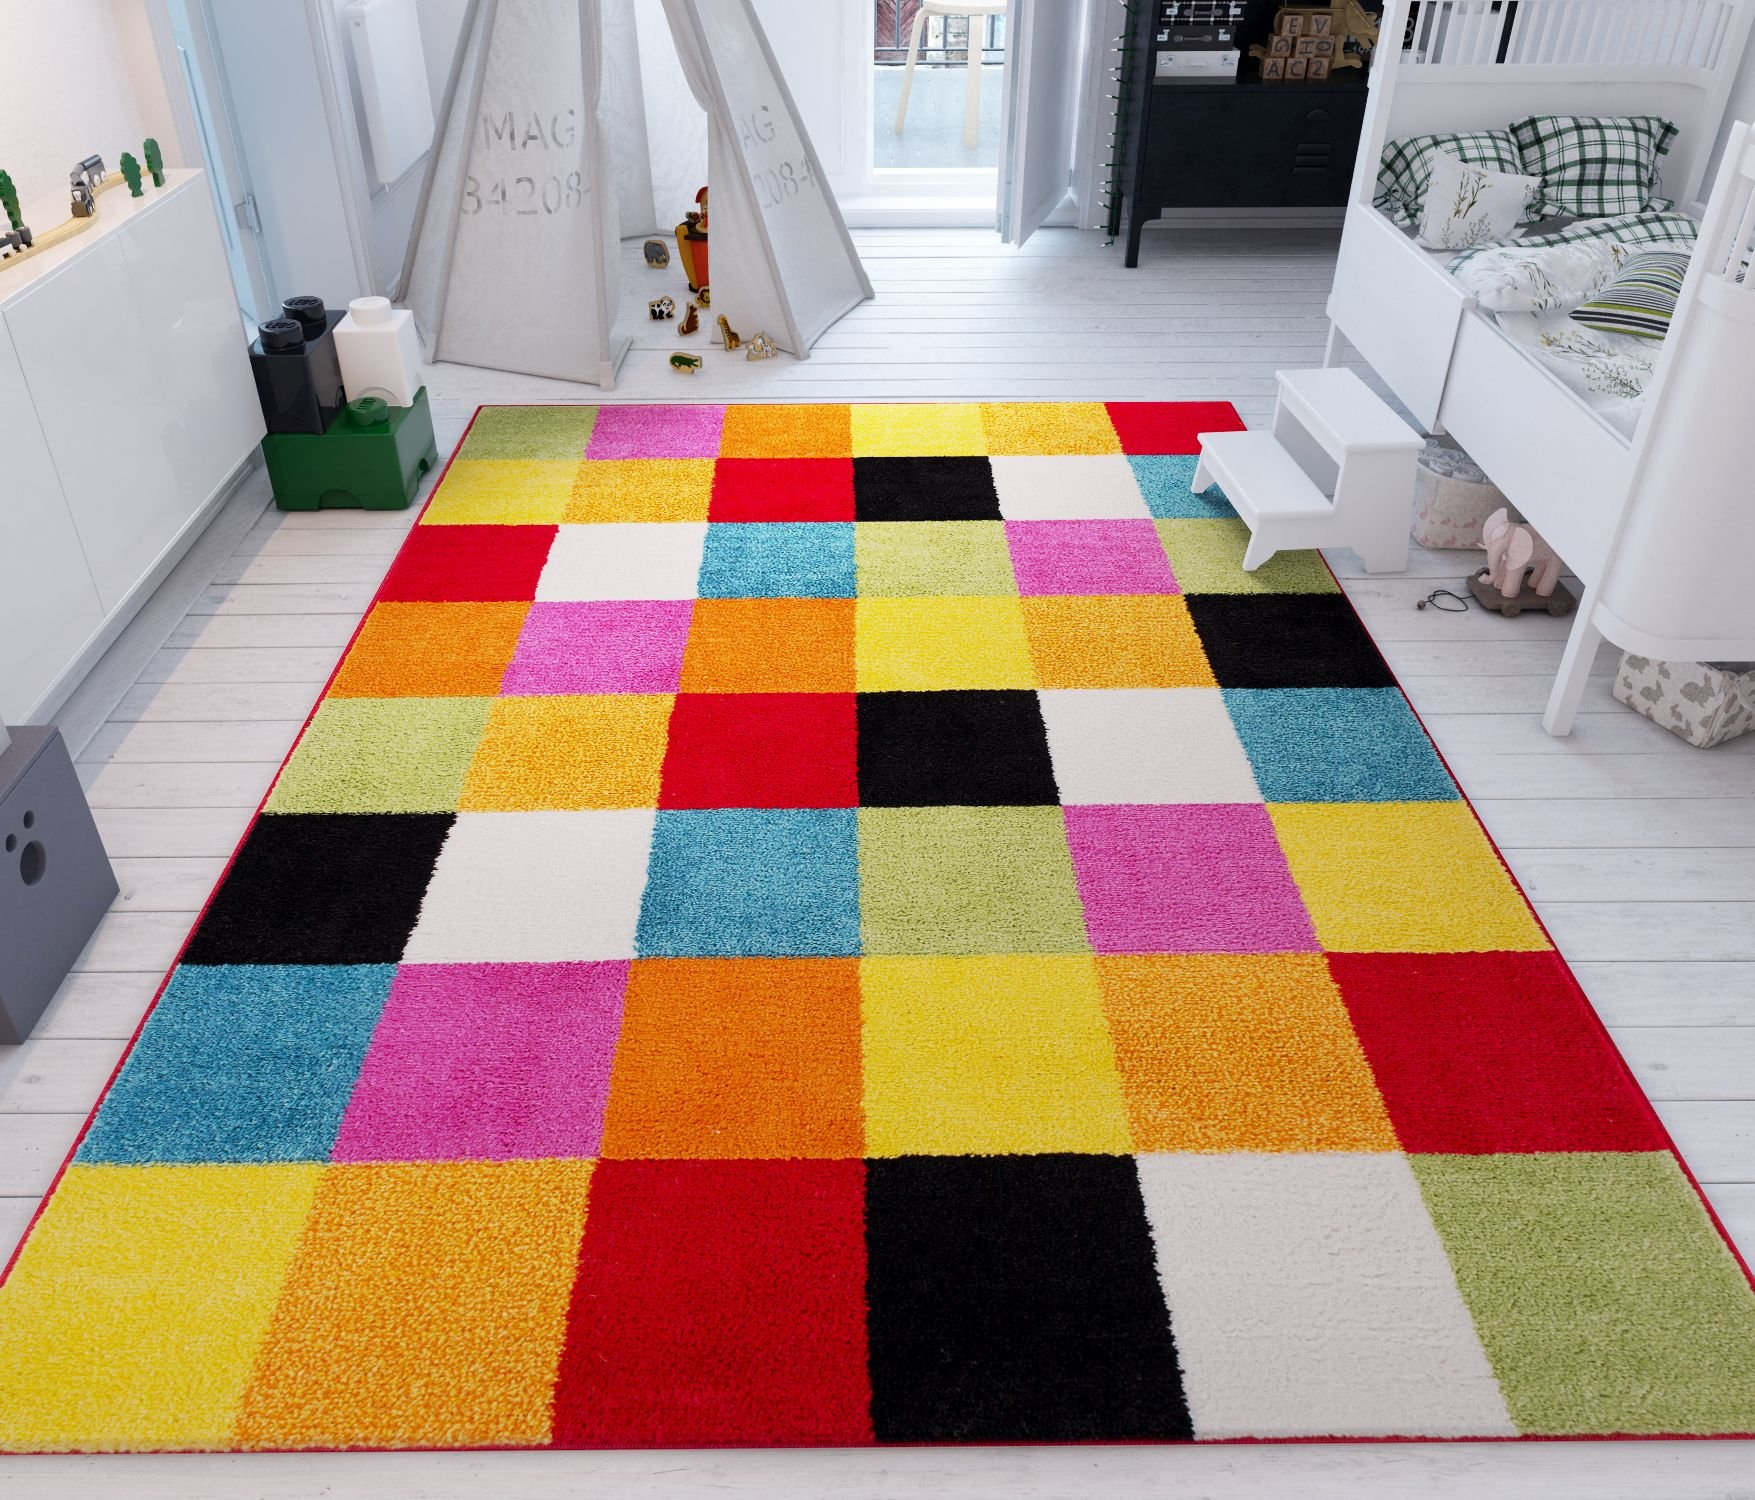 Modern Squares Multi Geometric Area Rug 8x10 ( 7'10'' x 10'6'' ) Abstract Checkerborad Boxes Bright Living Kid RoomPlayroom Nursery Bedroom Carpet Soft Durable Stain Fade Resistant Shed Free Easy Clean